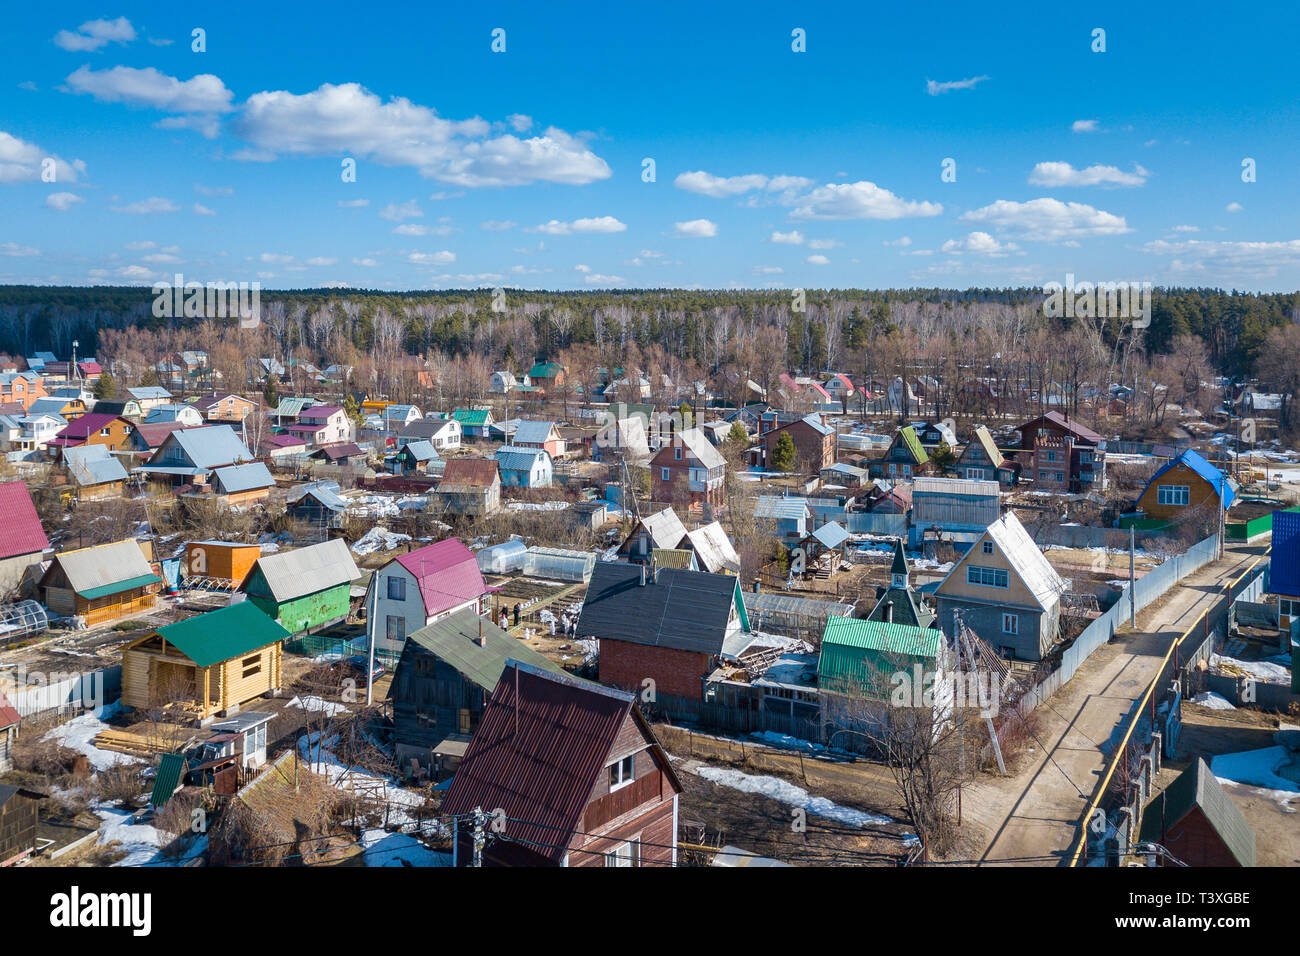 Aerial photography of a a cottage village with colorful houses, road, green trees and yards. Helicopter drone shot - Stock Image